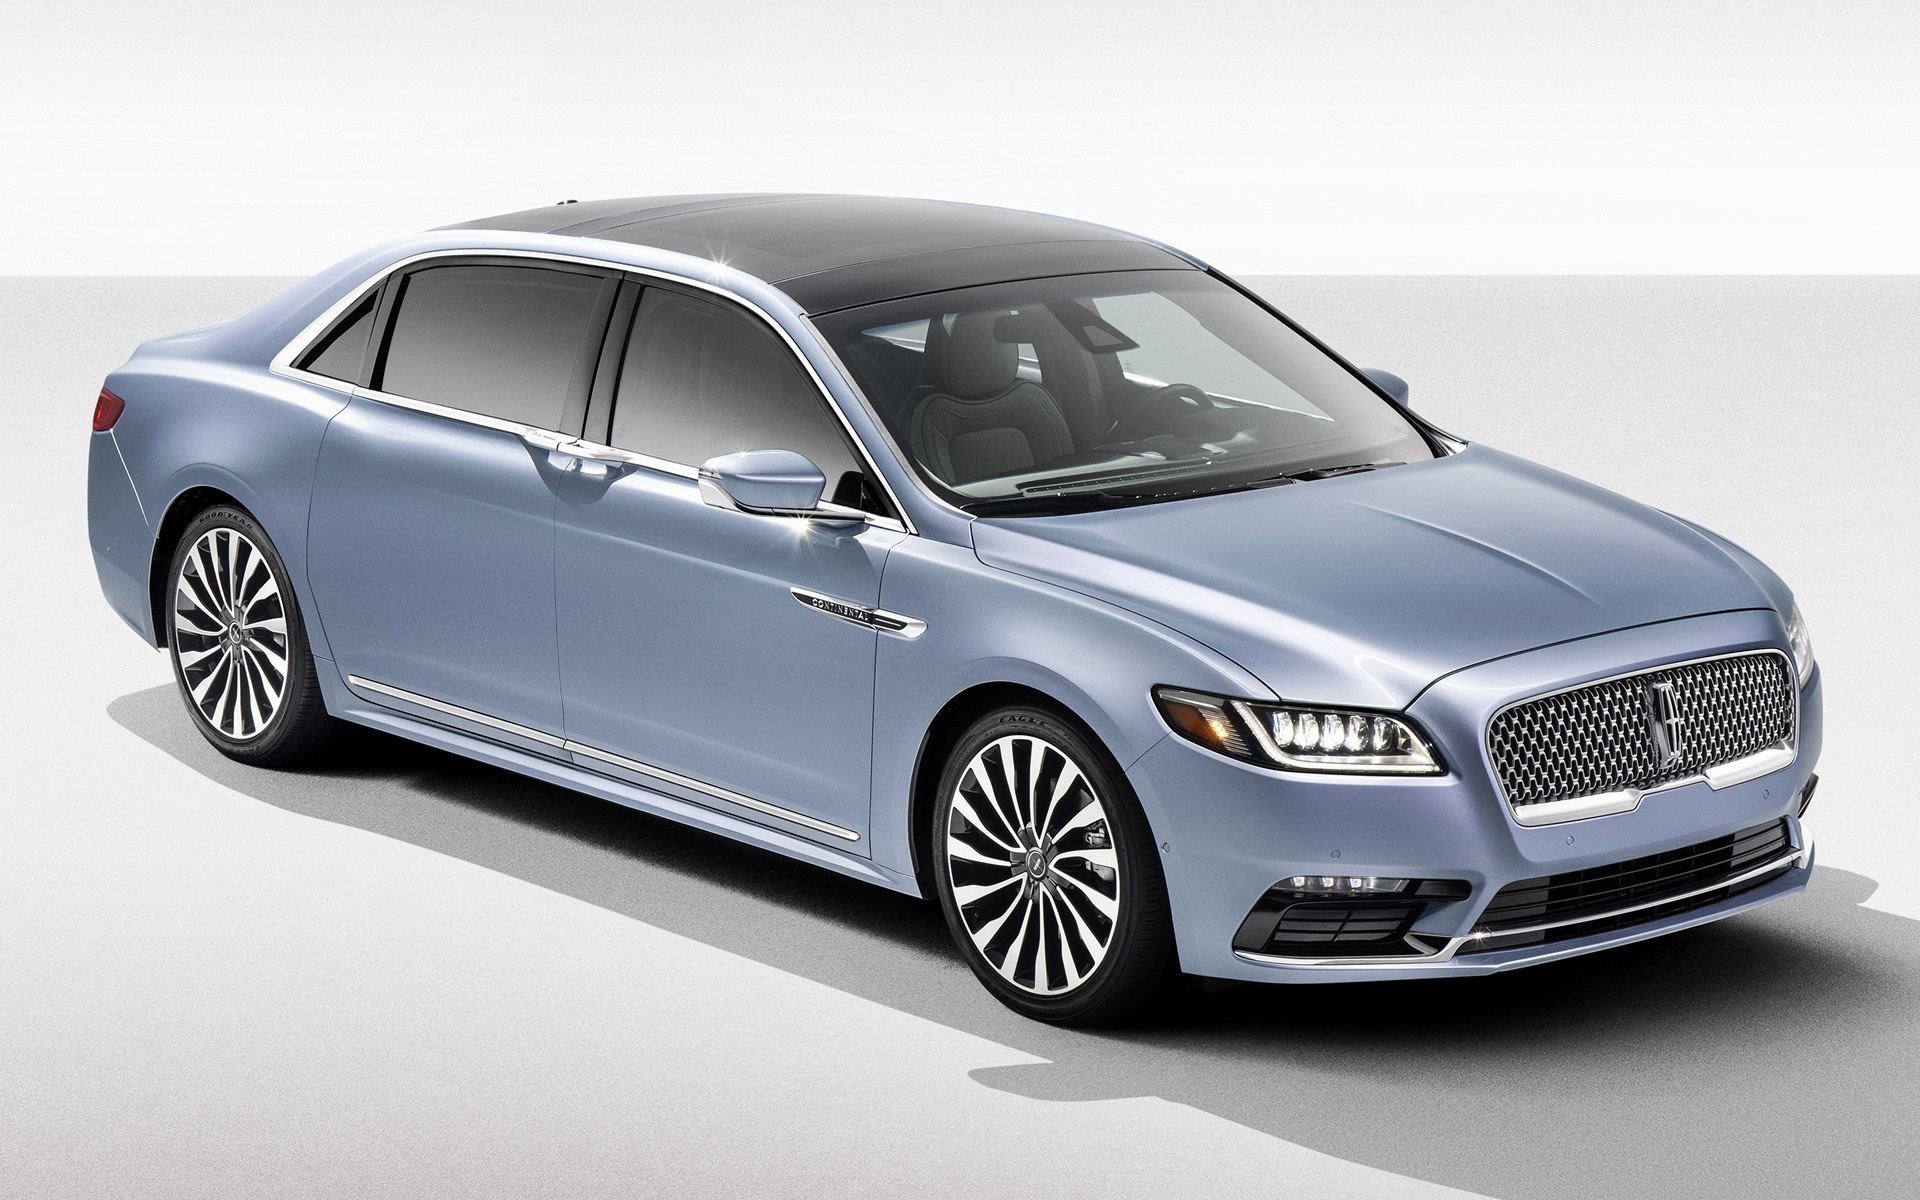 2019 Lincoln Continental 80th Anniversary Coach Door Edition - Wallpapers and HD Images | Car Pixel